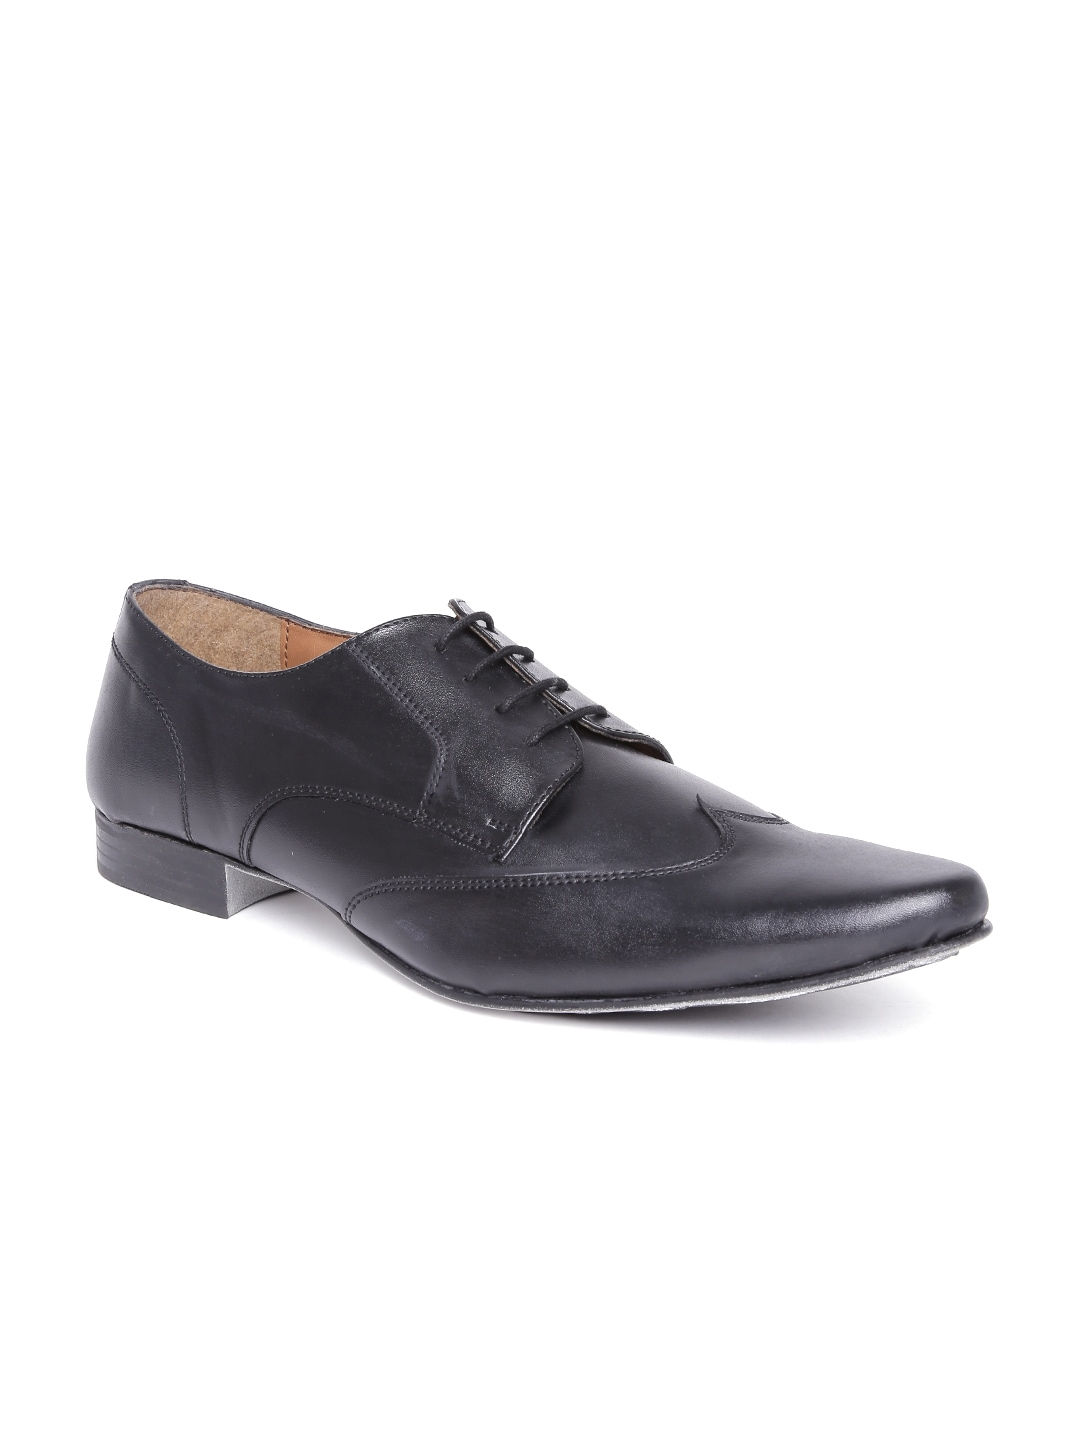 Knotty Derby by Arden Men Black Formal Shoes image